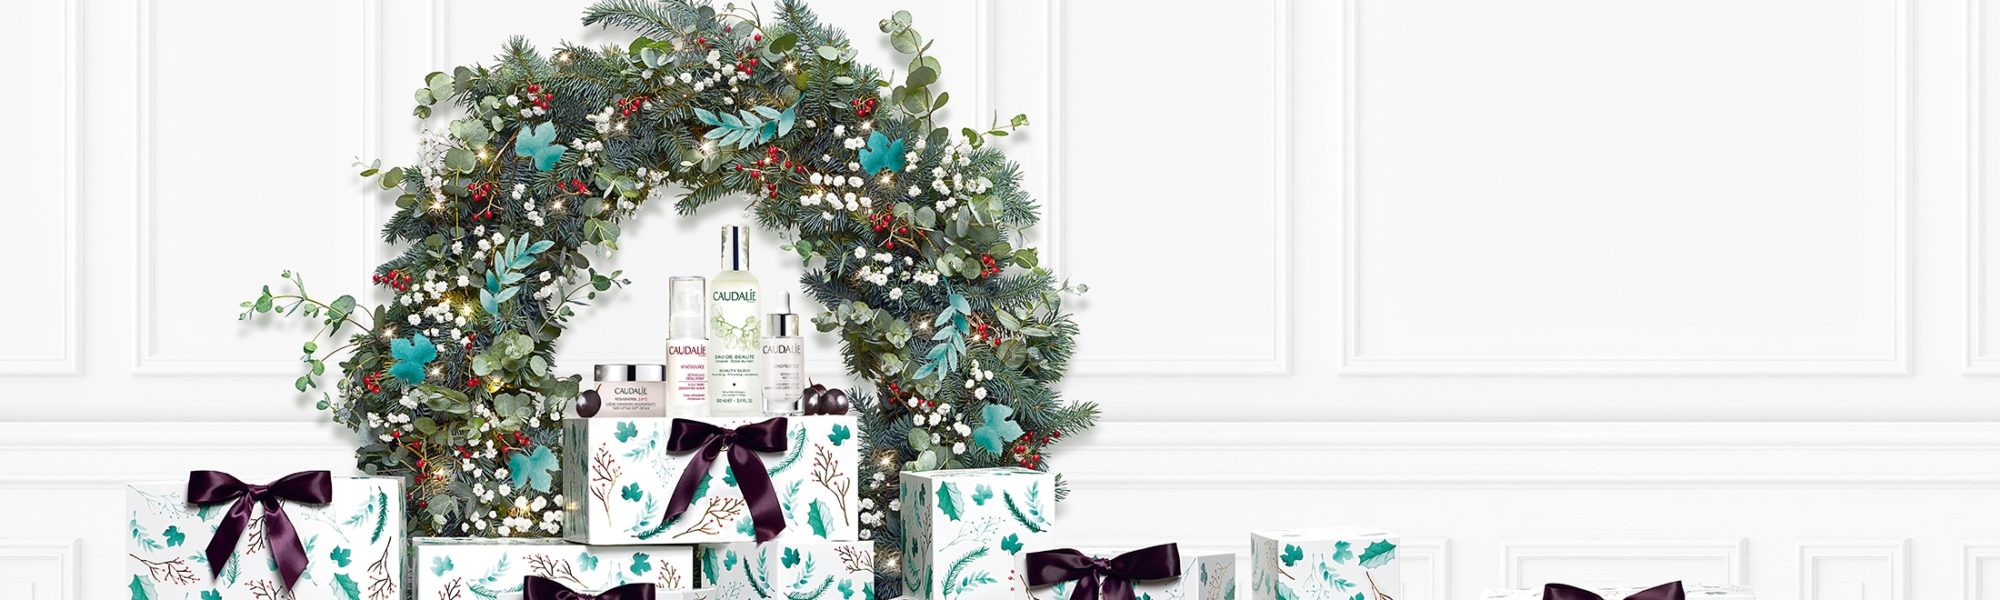 caudalie-christmas-reef-products-slider-banner-2017